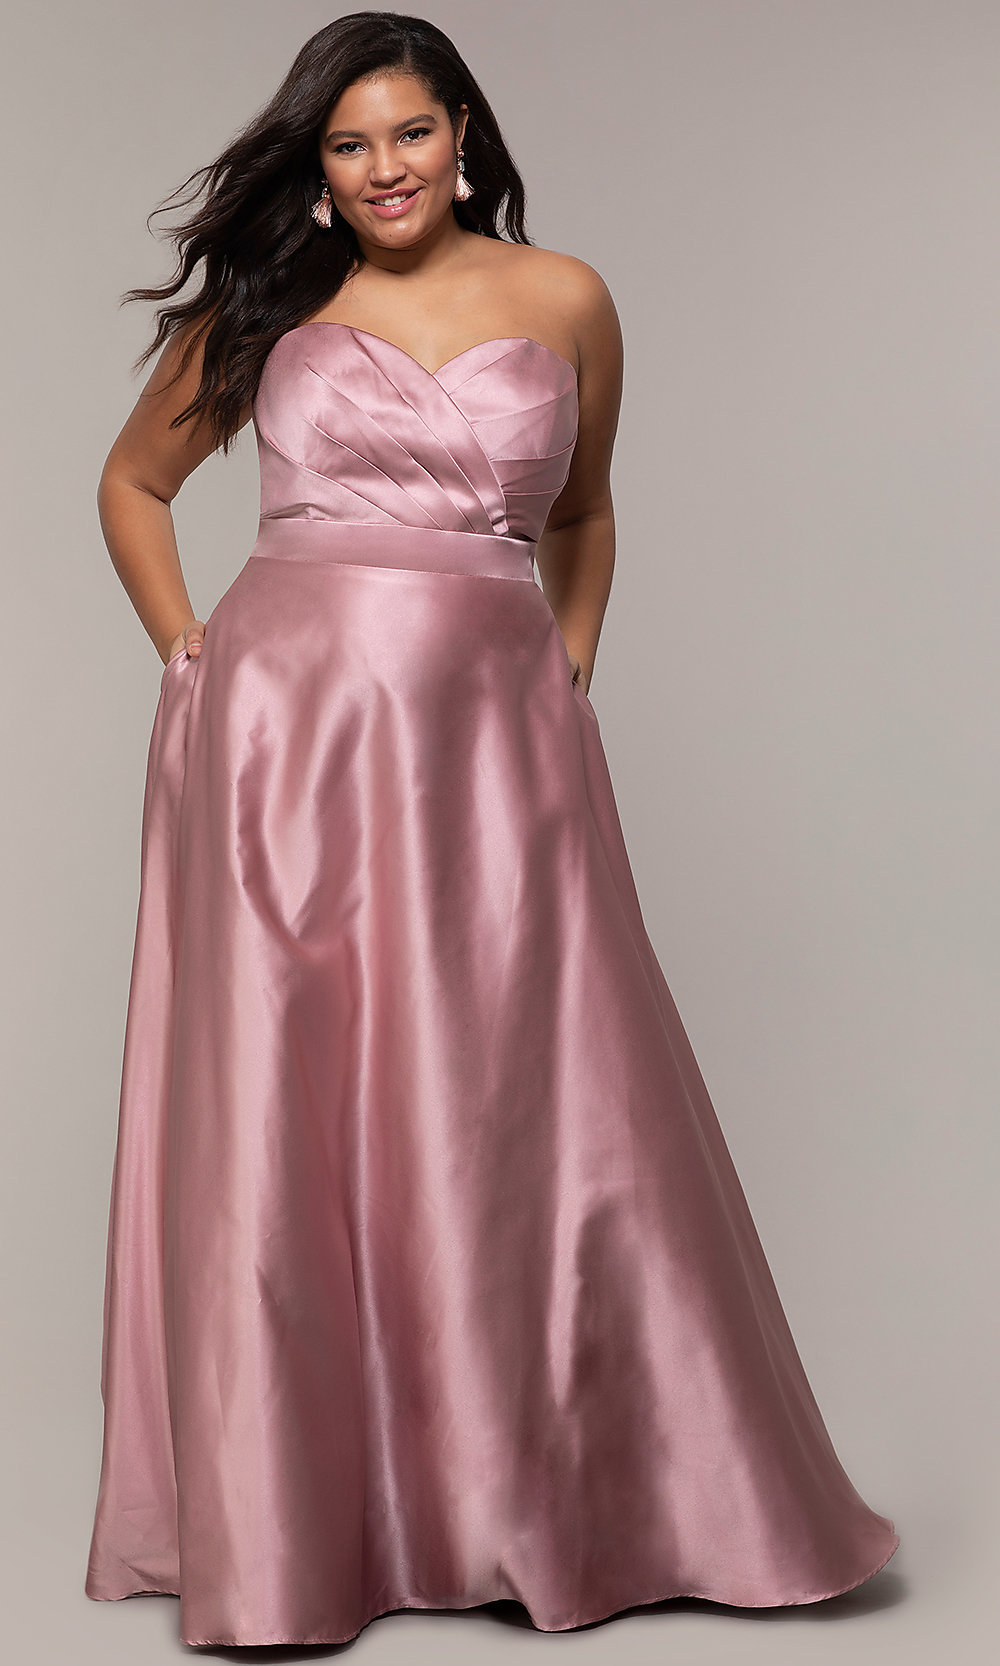 Plus-Size Strapless Sweetheart Prom Dress by PromGirl